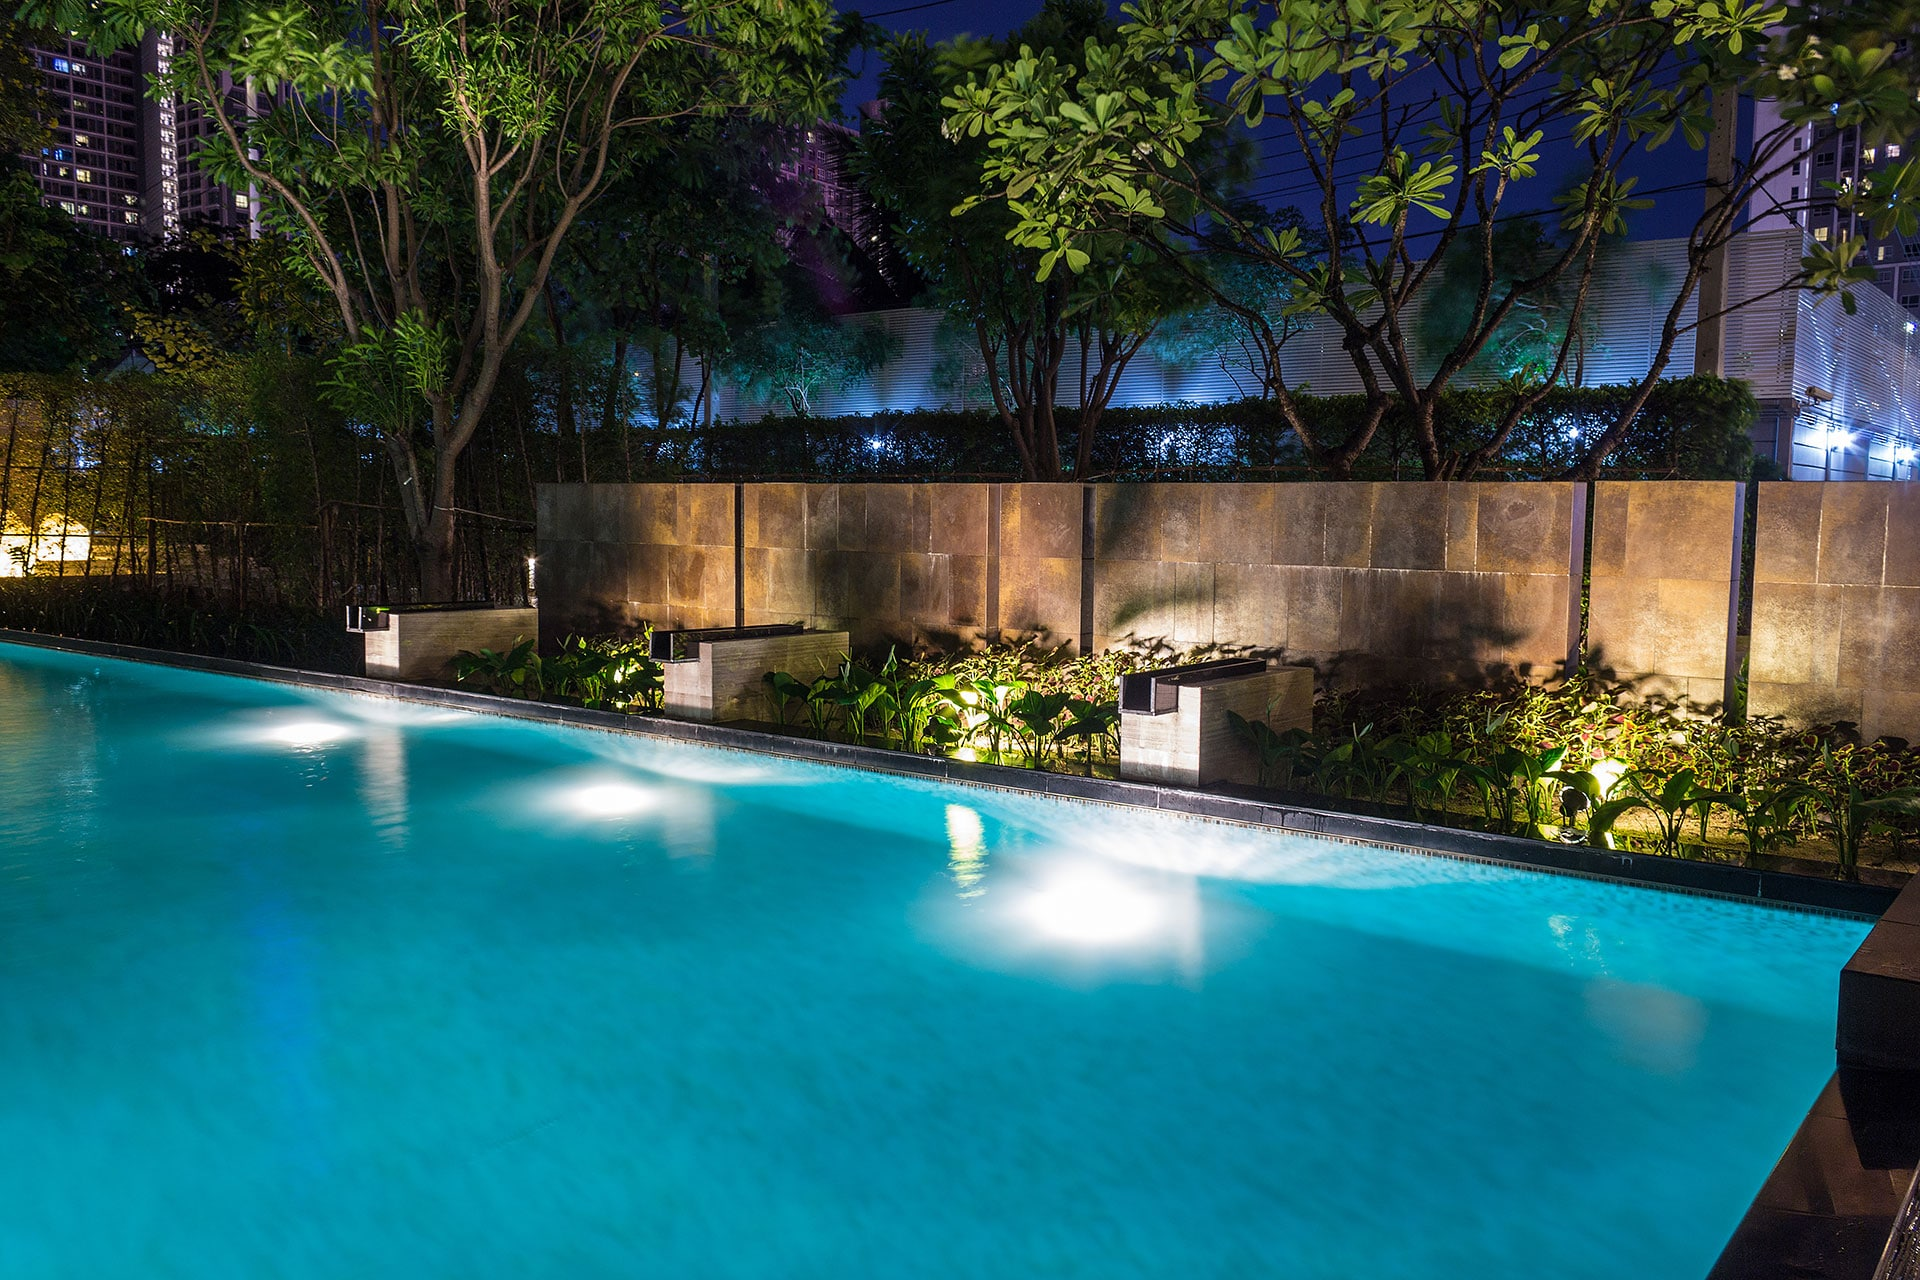 pool remodeling company Dallas-Fort Worth